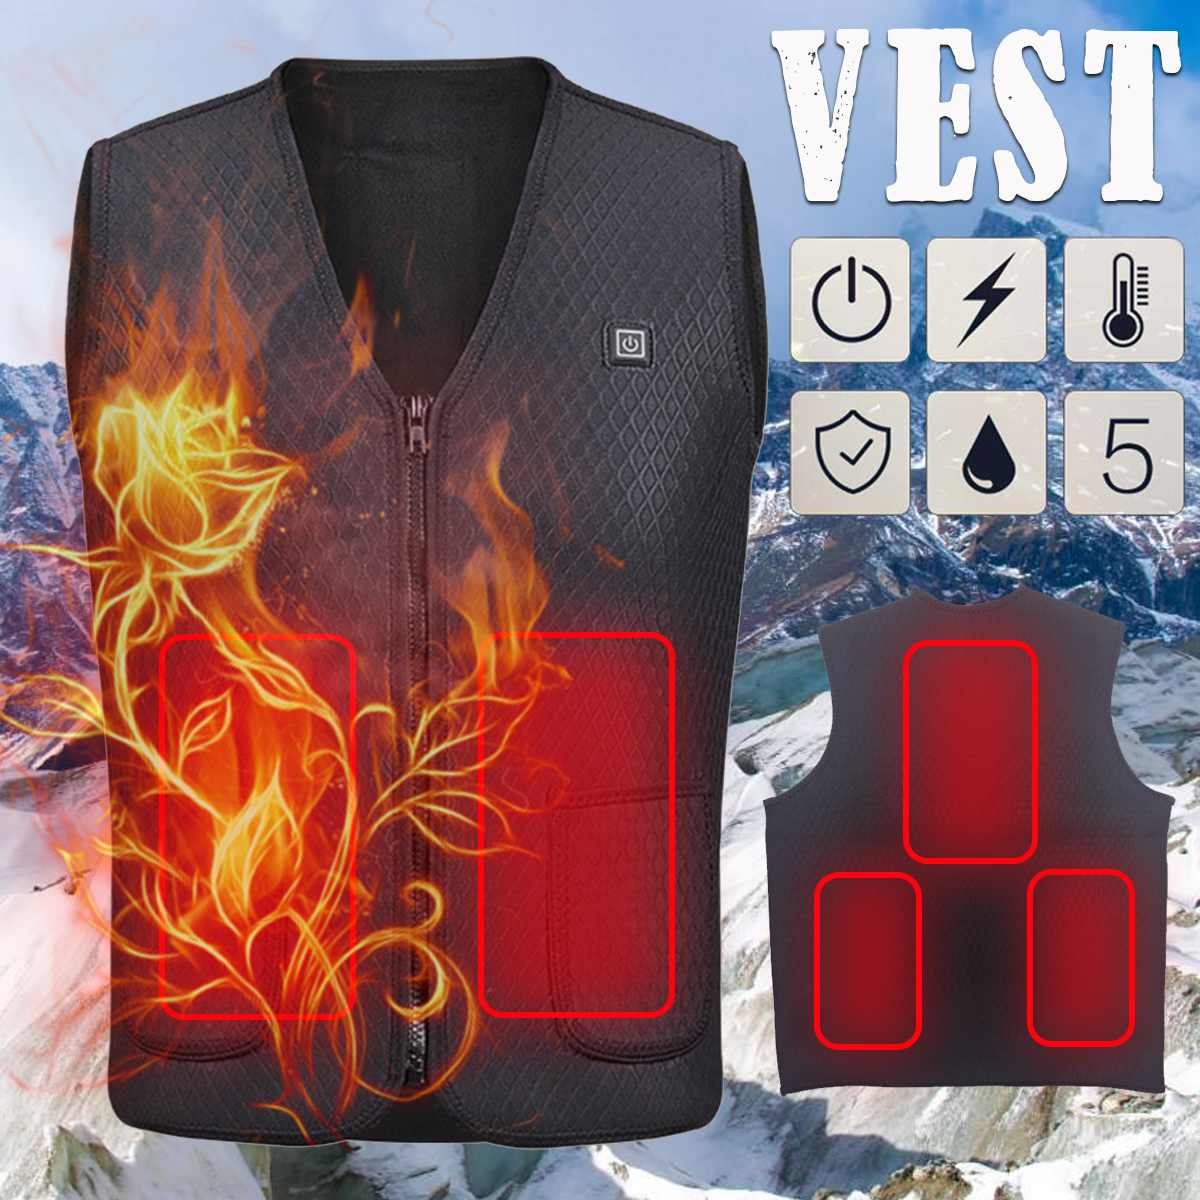 Men Outdoor USB Infrared Heating Vest Jacket Winter Flexible Electric Thermal Clothing Waistcoat For Sports Hiking